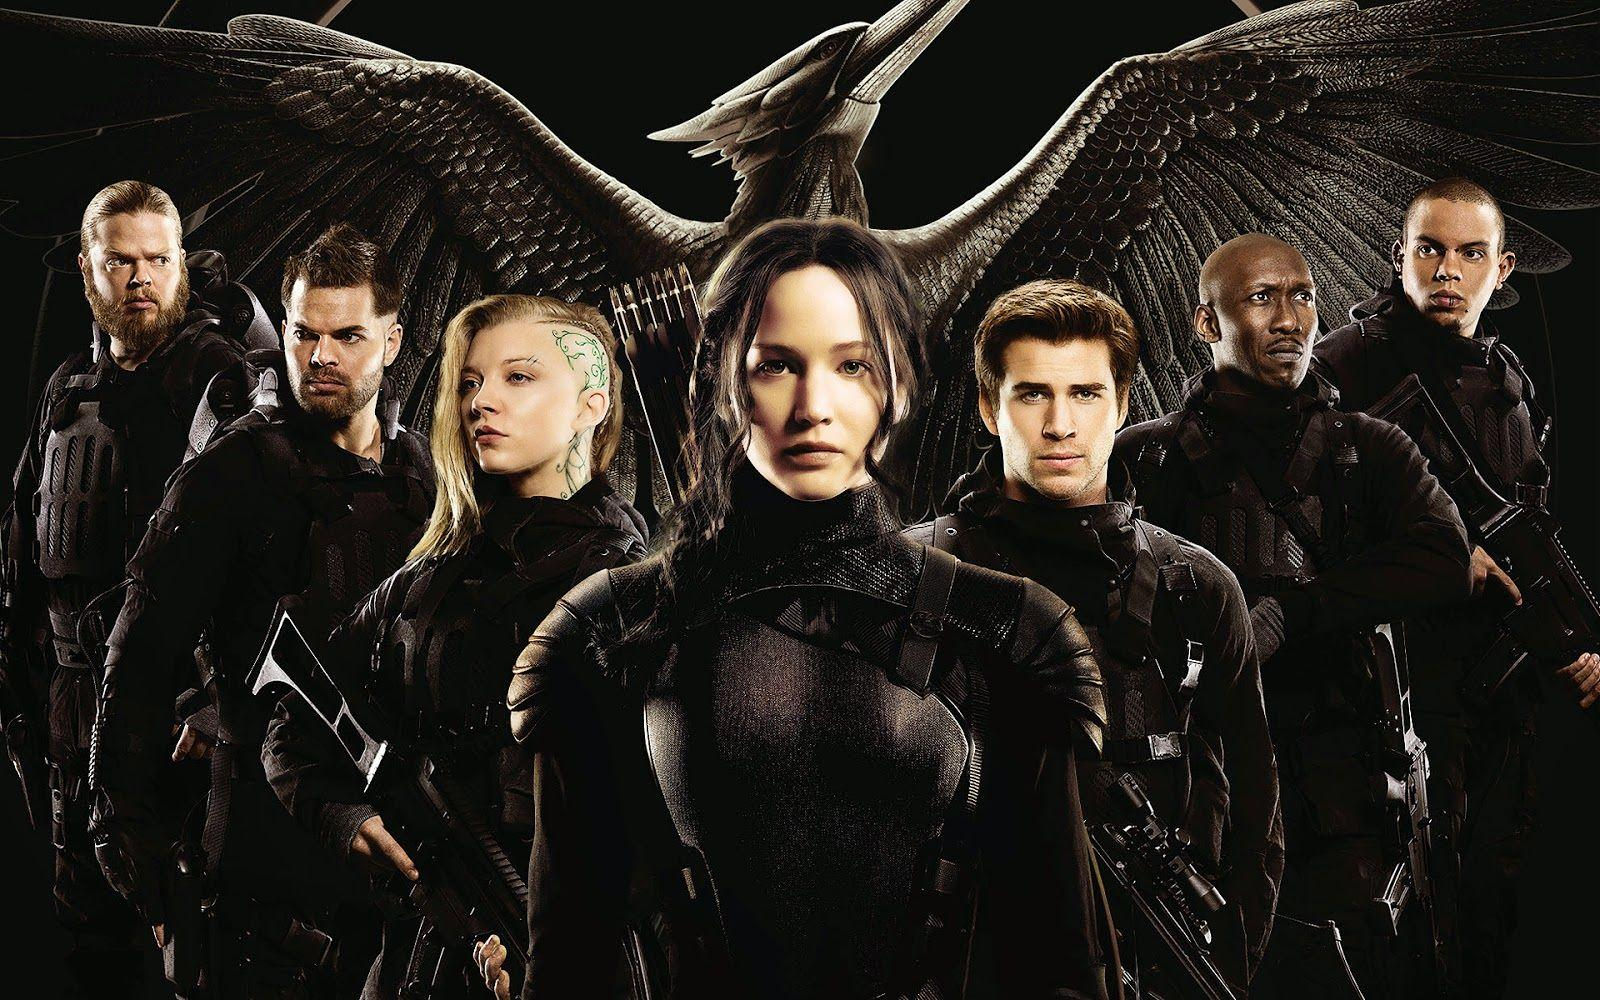 The Hunger Games Mockingjay Part 2 Vividly Ends Film Series